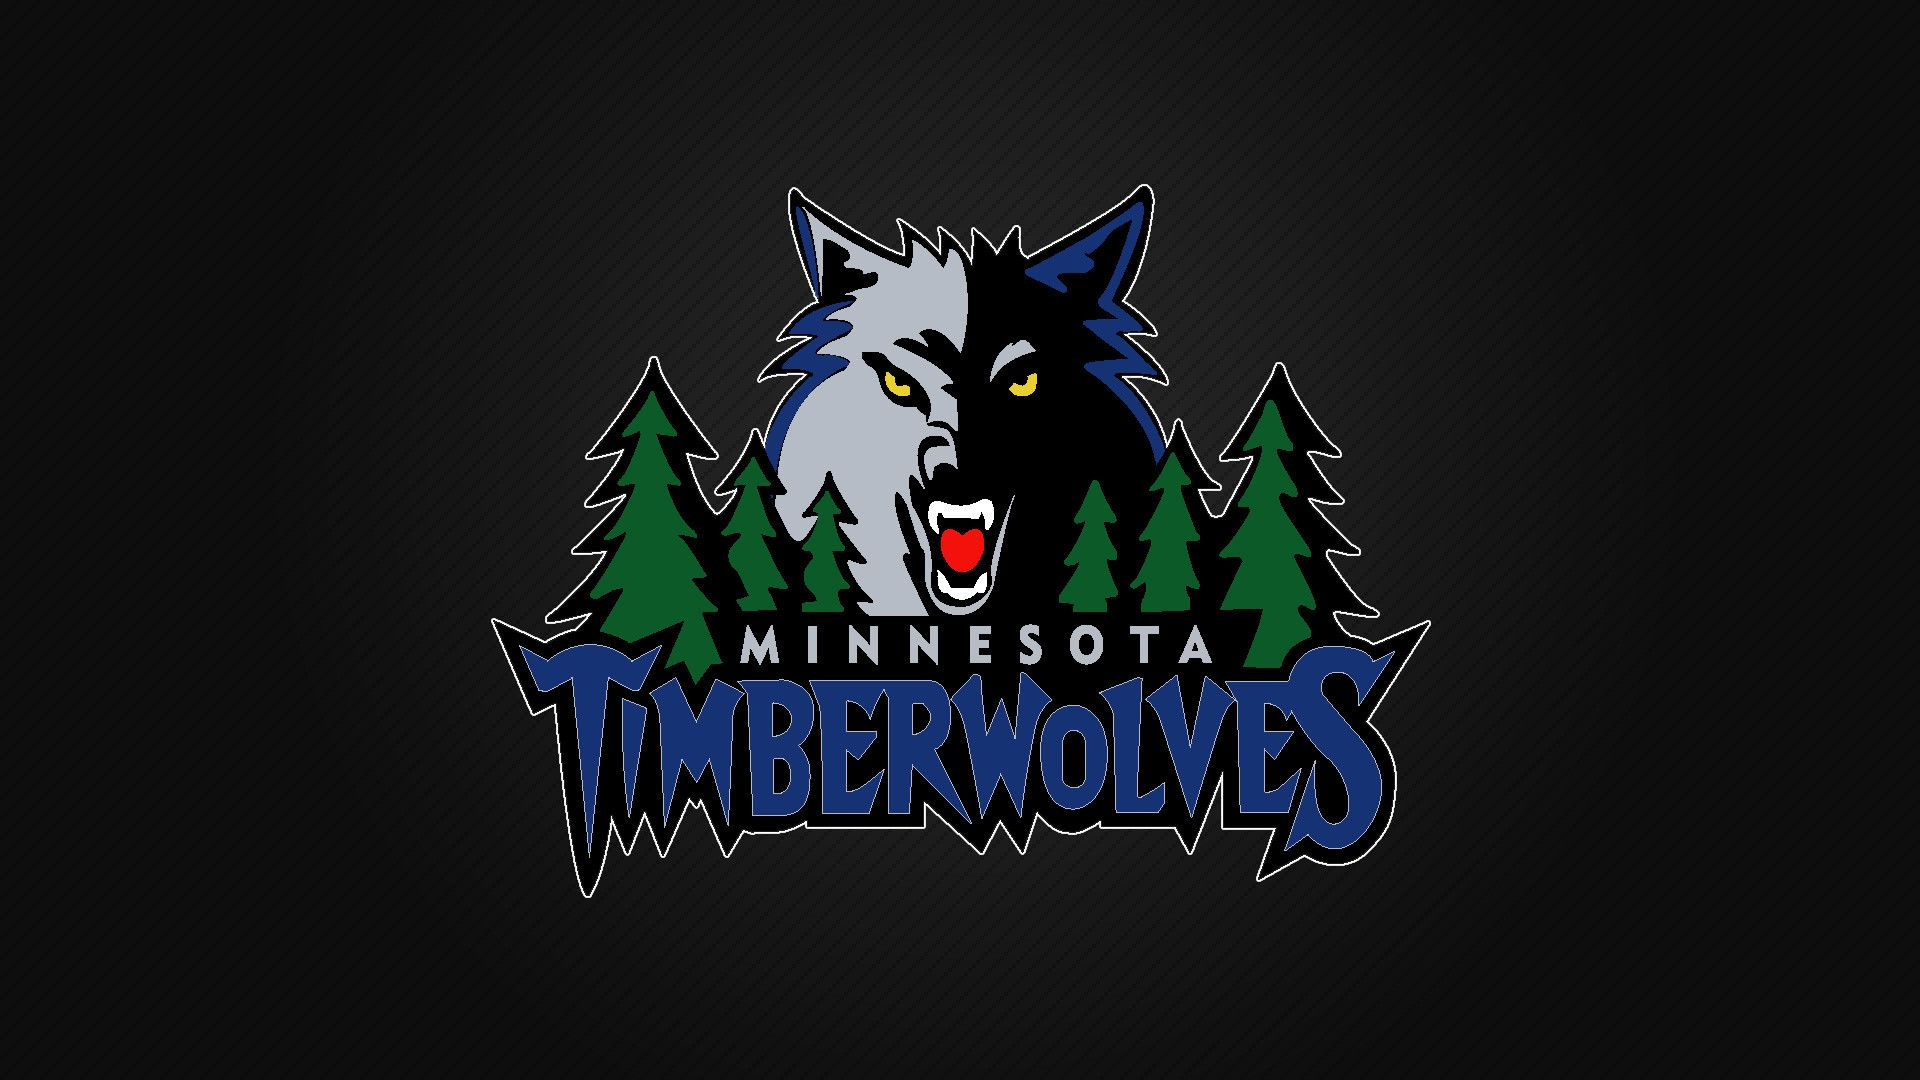 Minnesota Timberwolves Wallpaper (56+ images)